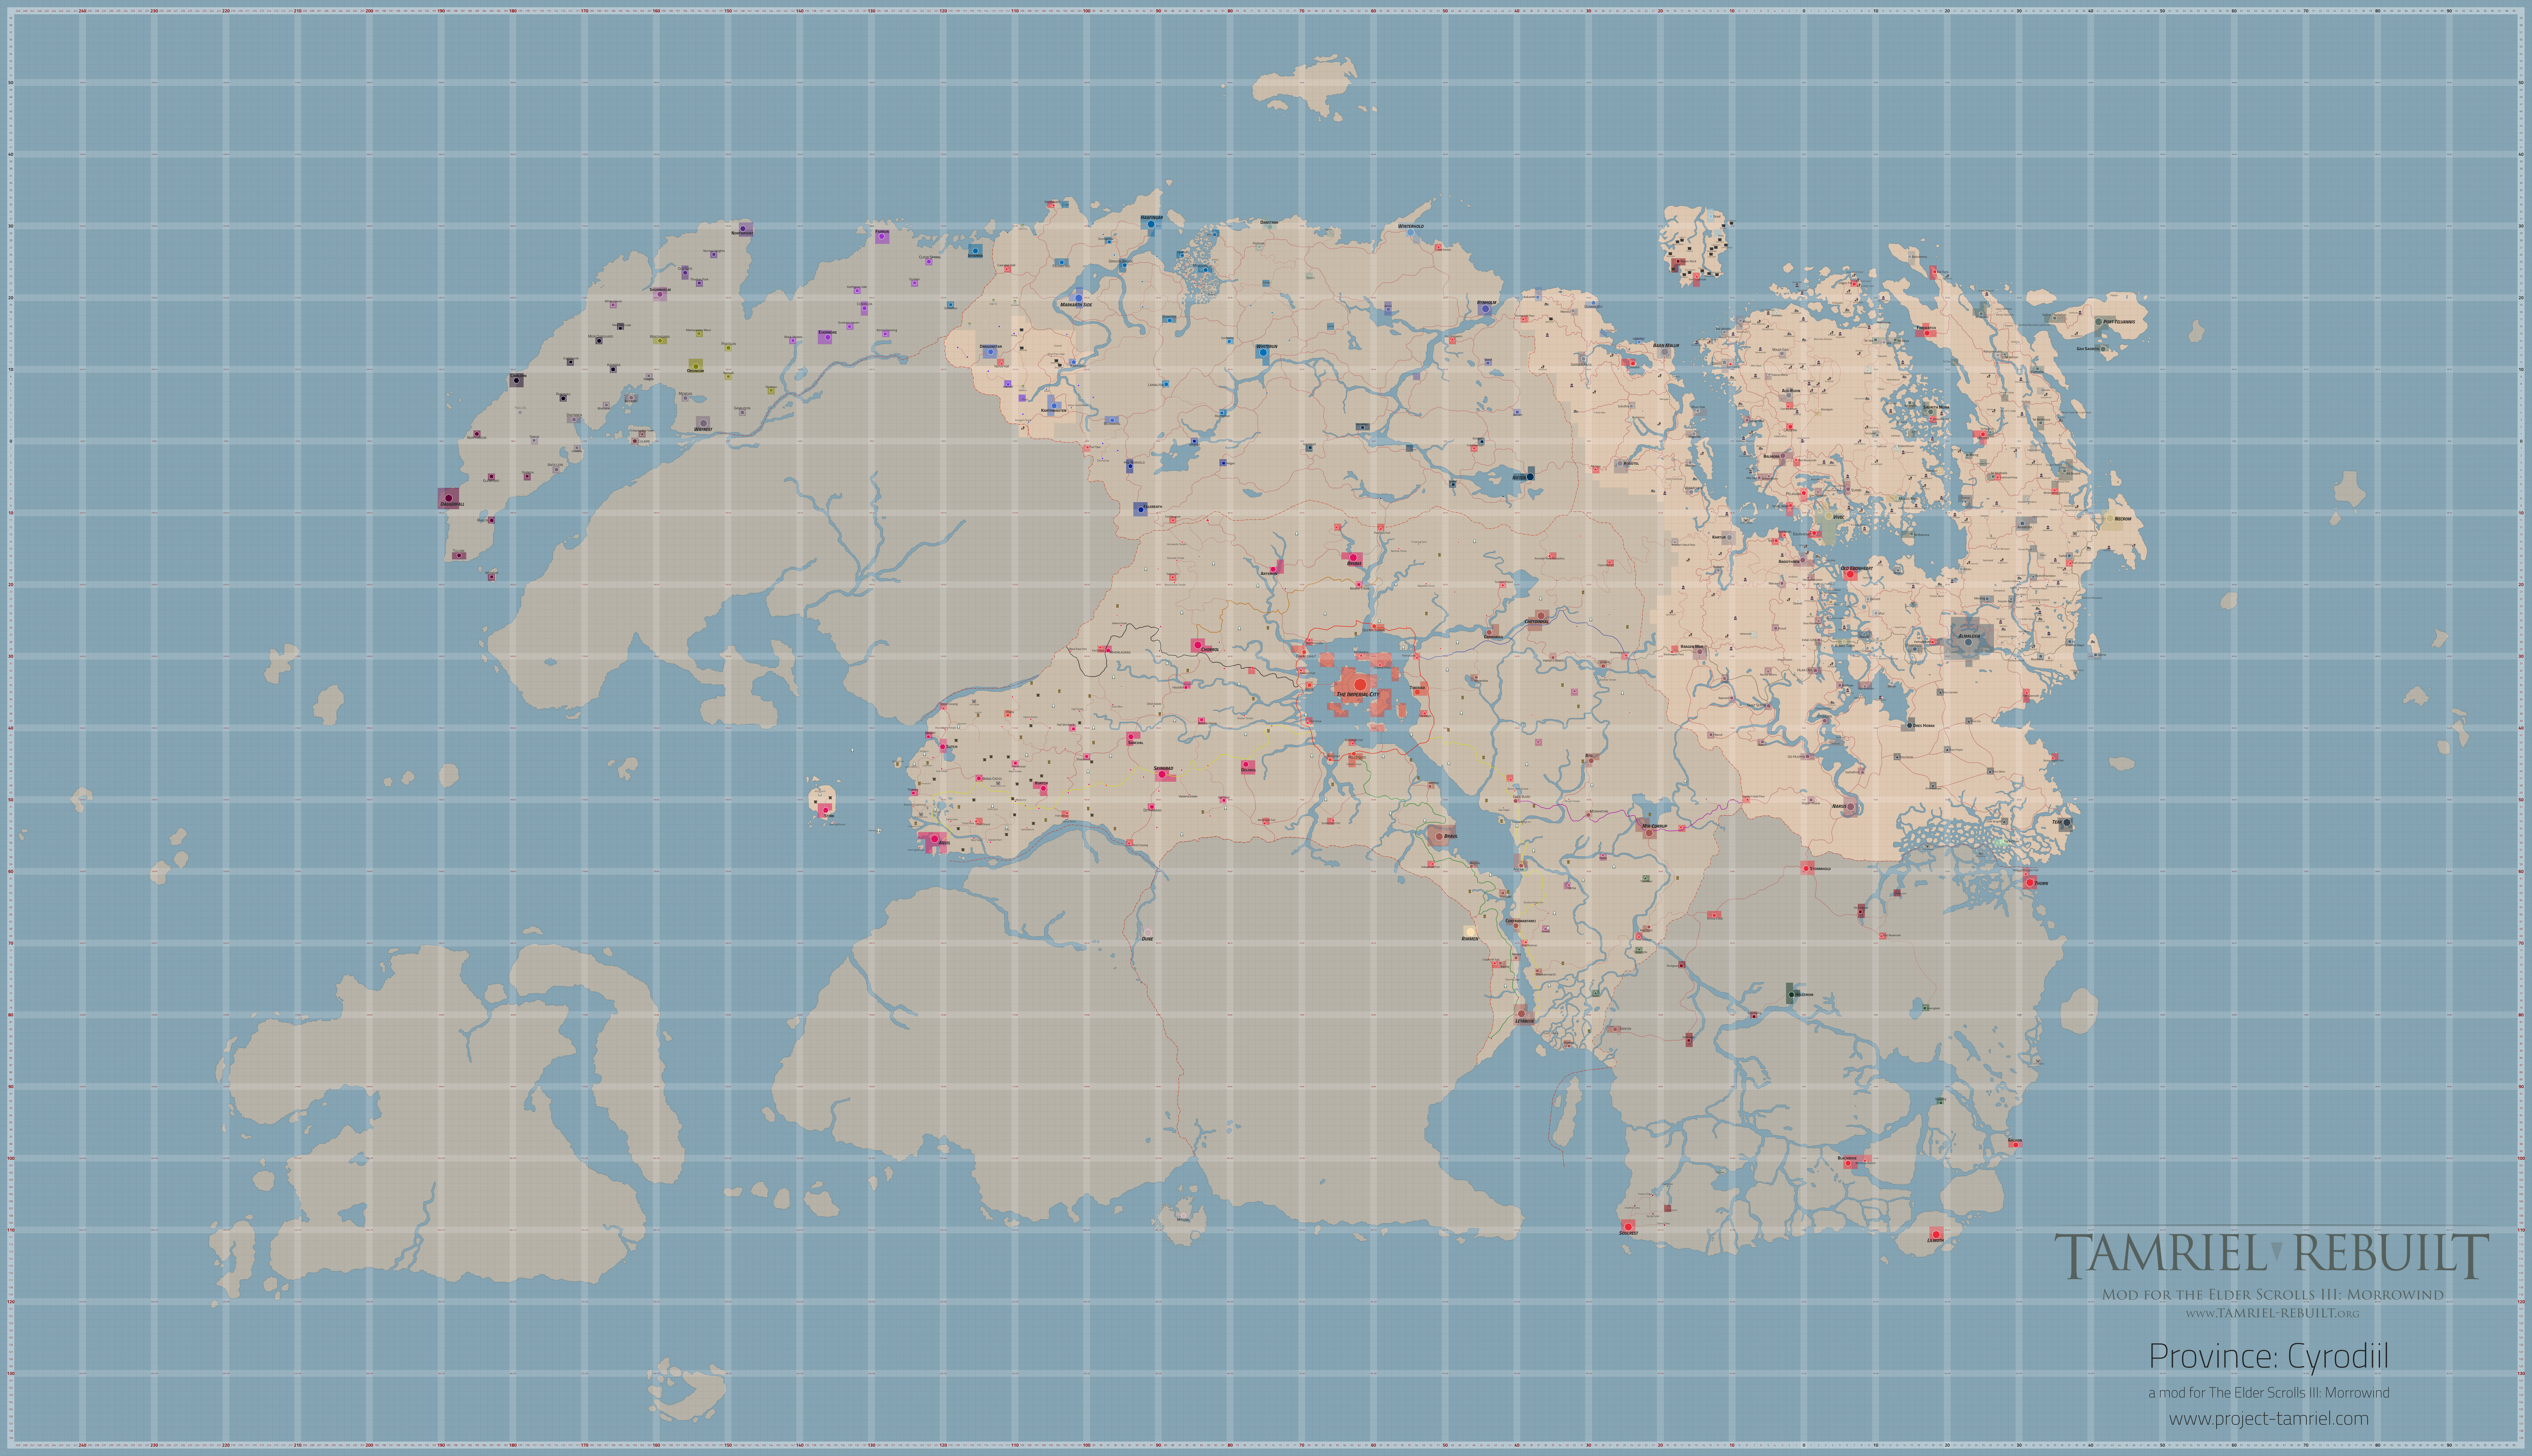 WIP] Tamriel Gridmap of ''Project Tamriel'' and ''Tamriel